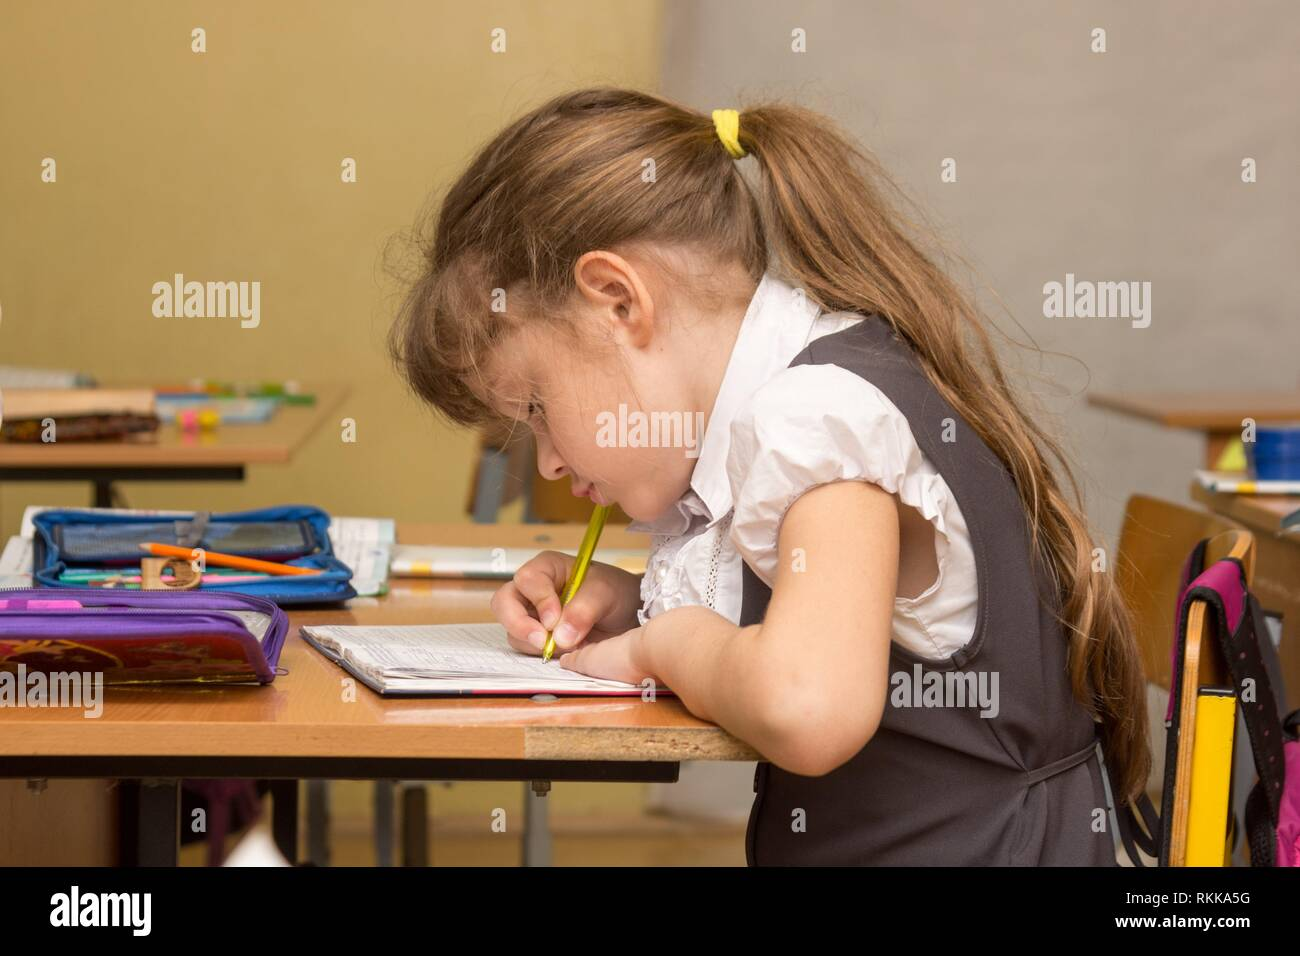 A schoolgirl in a lesson crouched writes in a notebook. Stock Photo